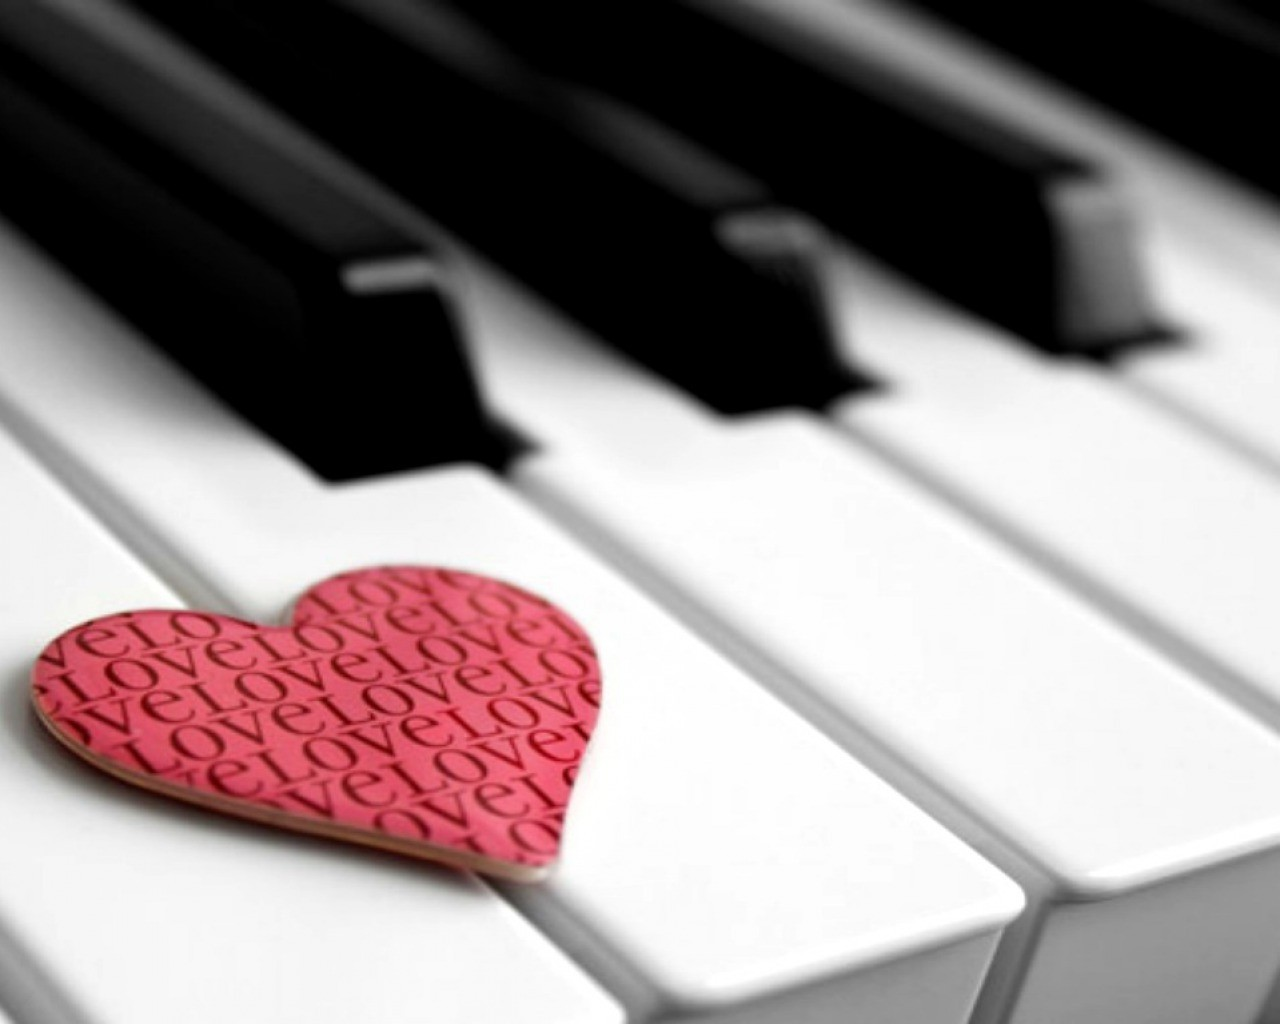 music-piano-harmony-melody-mystical-inspiration-sublime-1280x1024-wallpaper.jpg